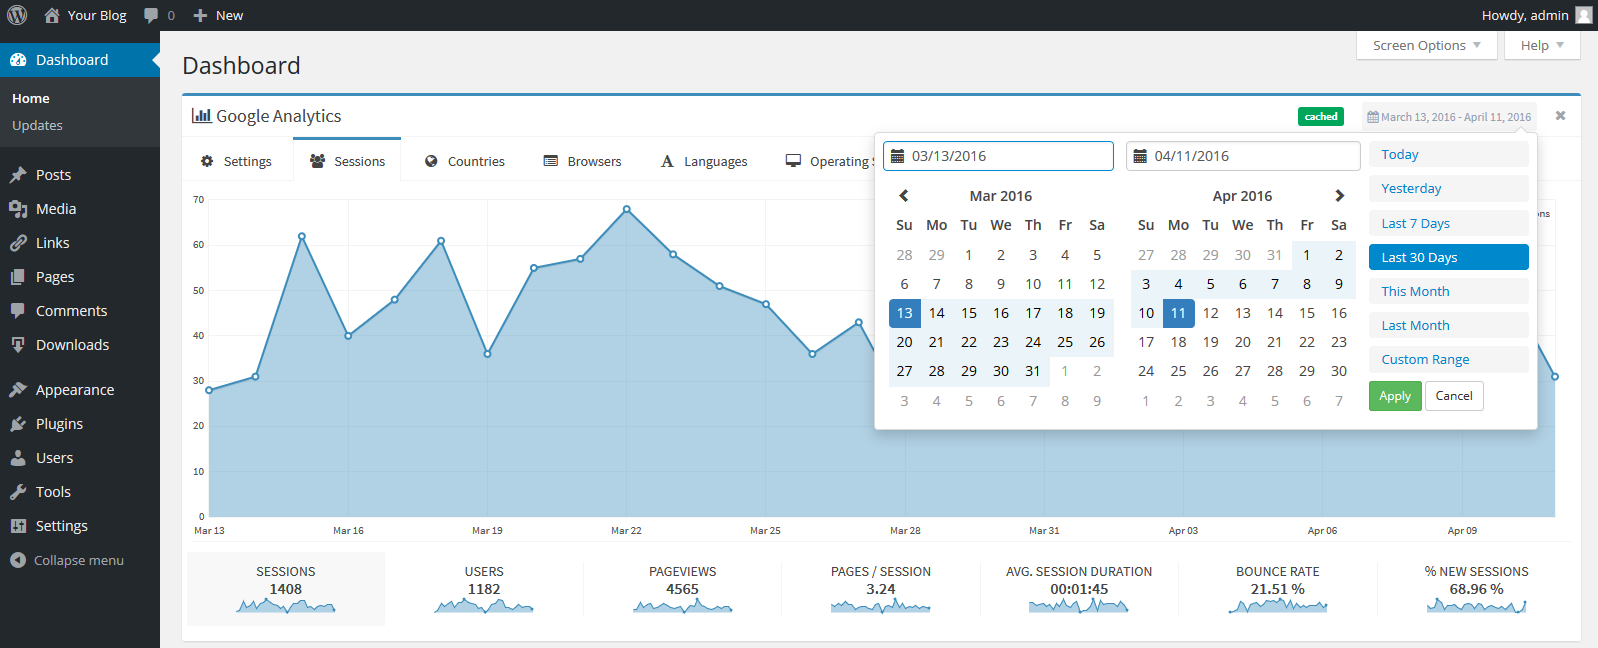 lara-google-analytics screenshot 4